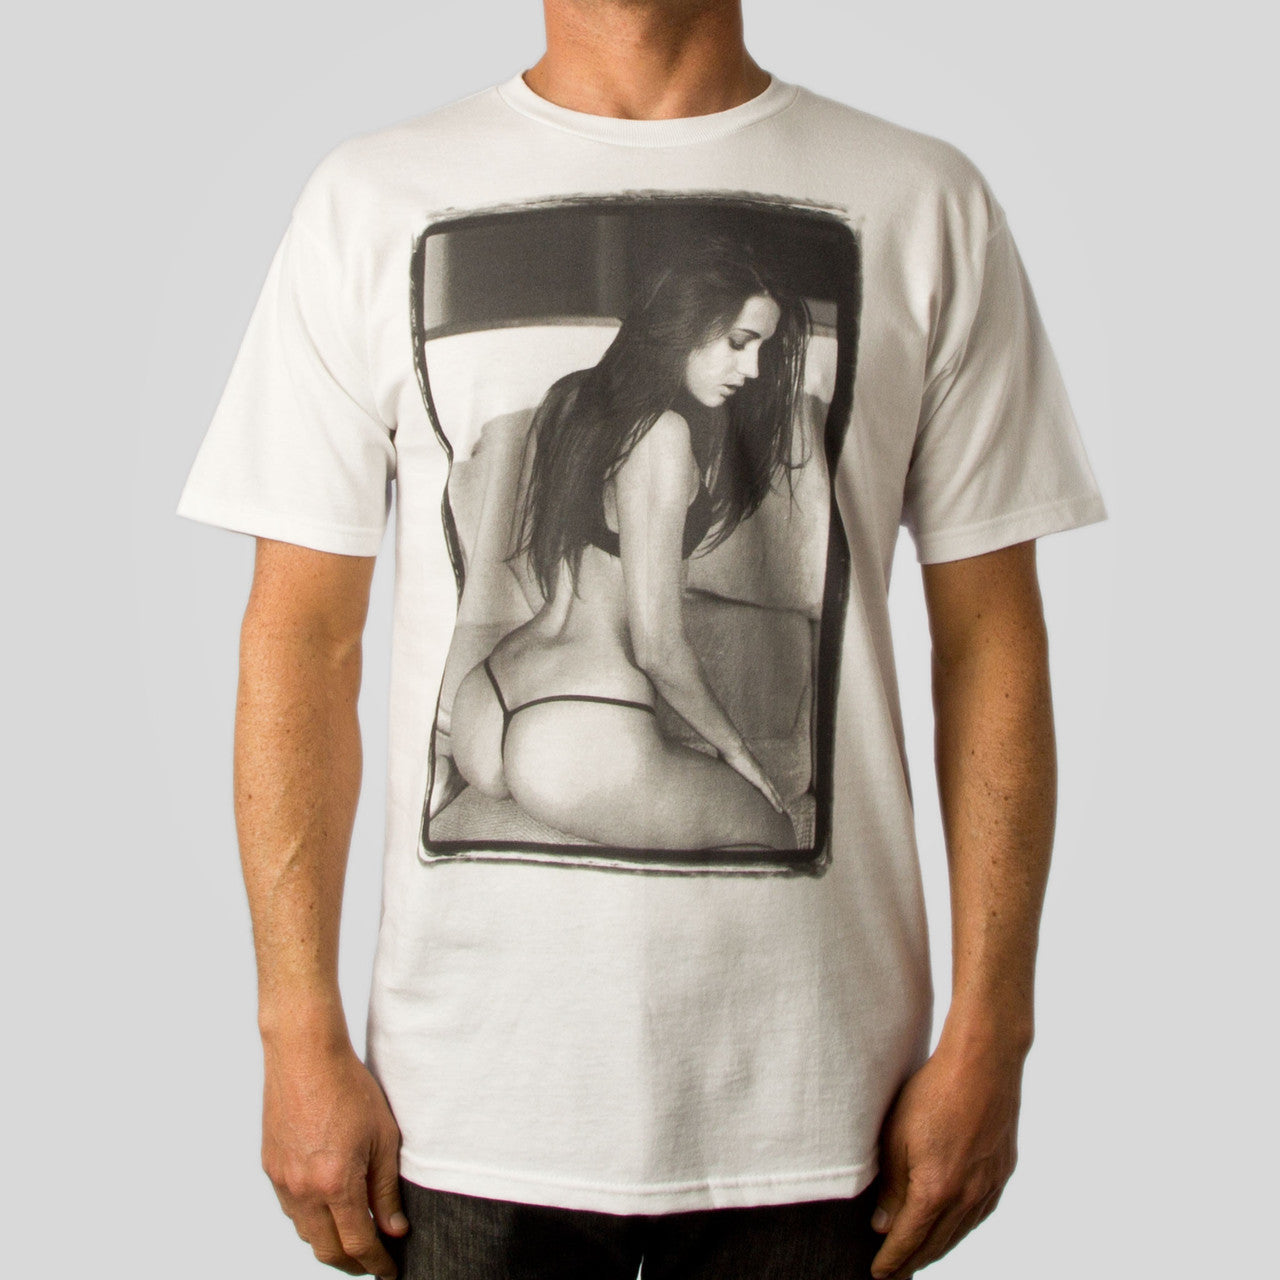 Estevan Oriol - LA Woman 048 Shirt, White - The Giant Peach